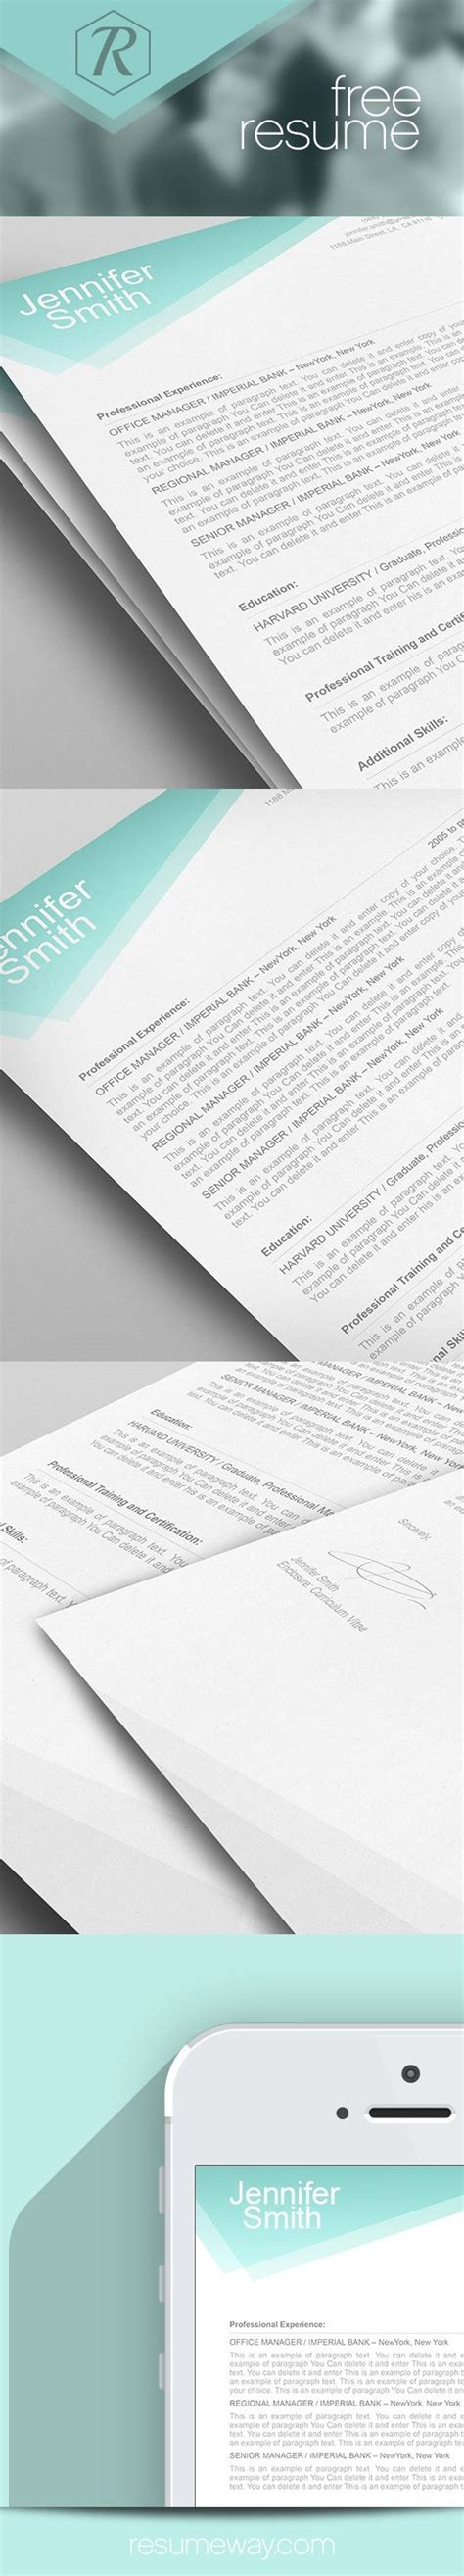 Free Resume Template 1100020 Premium Line Of Resume Cover Letter Templates Edit With Ms Letter Templates For Mac Pages